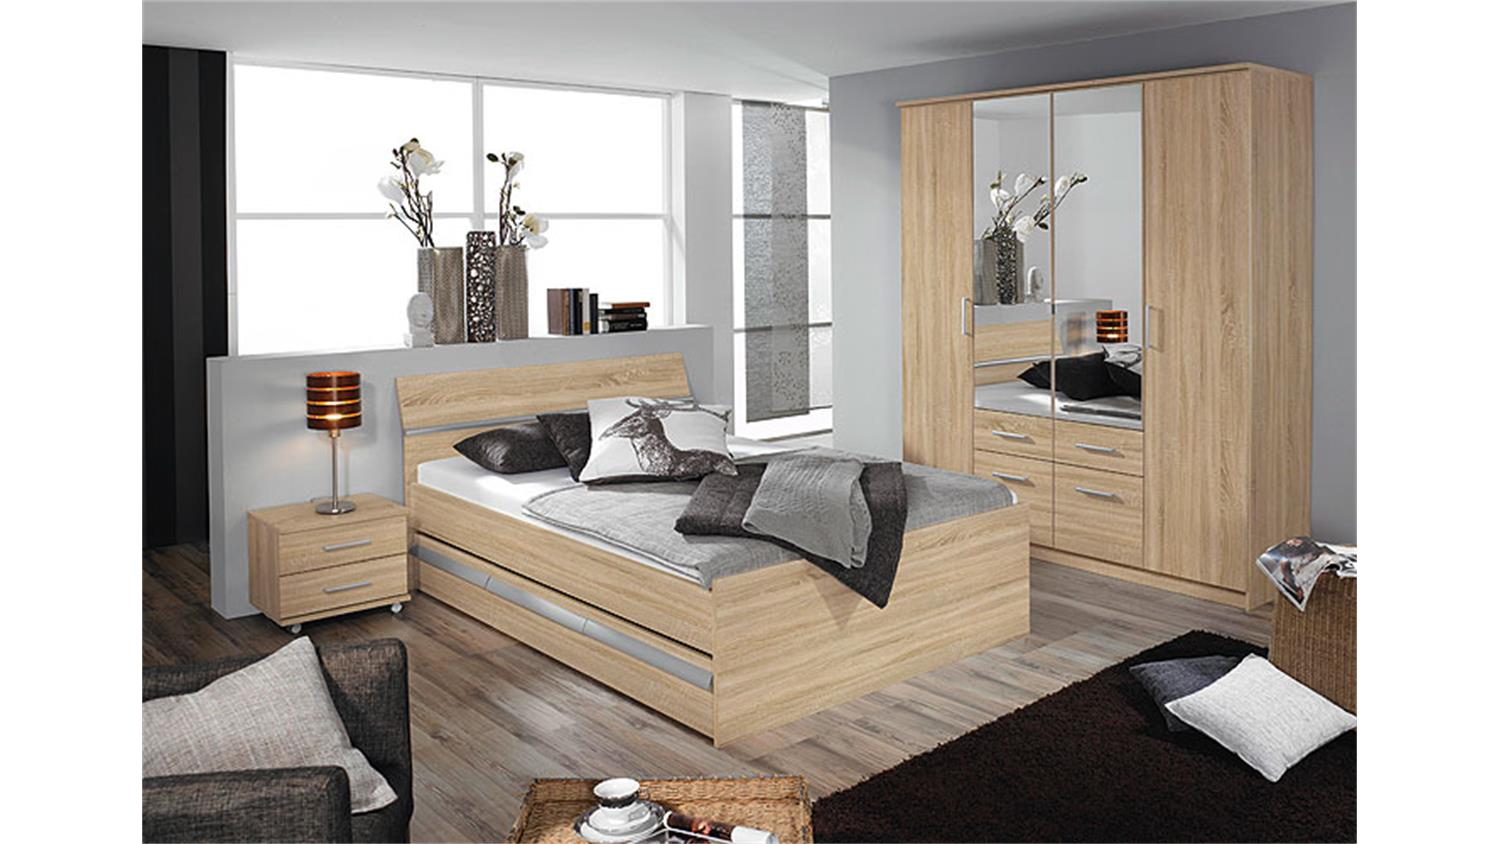 bett apulien schlafzimmerbett sonoma eiche s gerau 140 cm. Black Bedroom Furniture Sets. Home Design Ideas